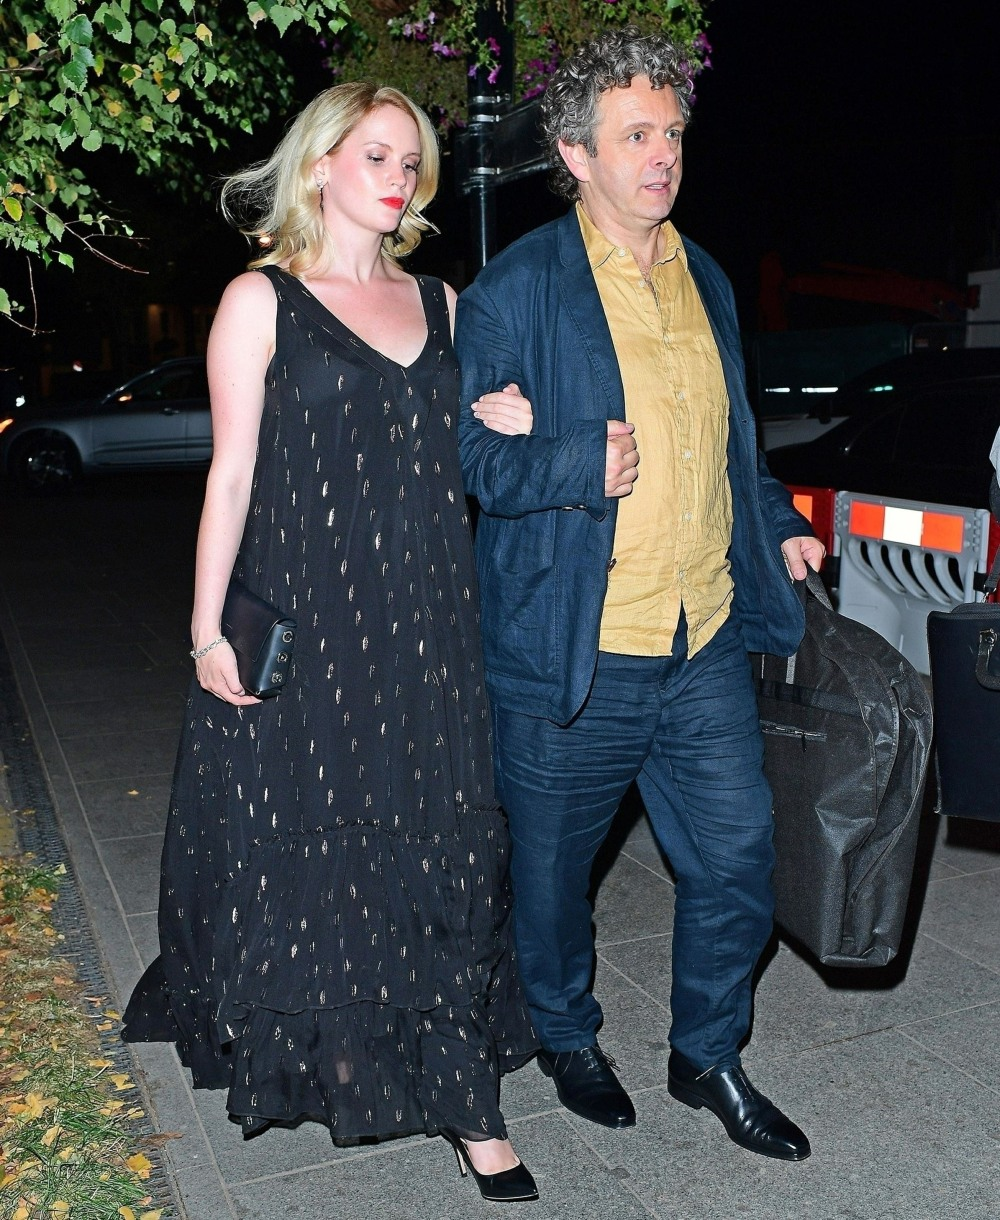 Michael Sheen and girlfriend Anna Lundberg leaving the GQ Awards